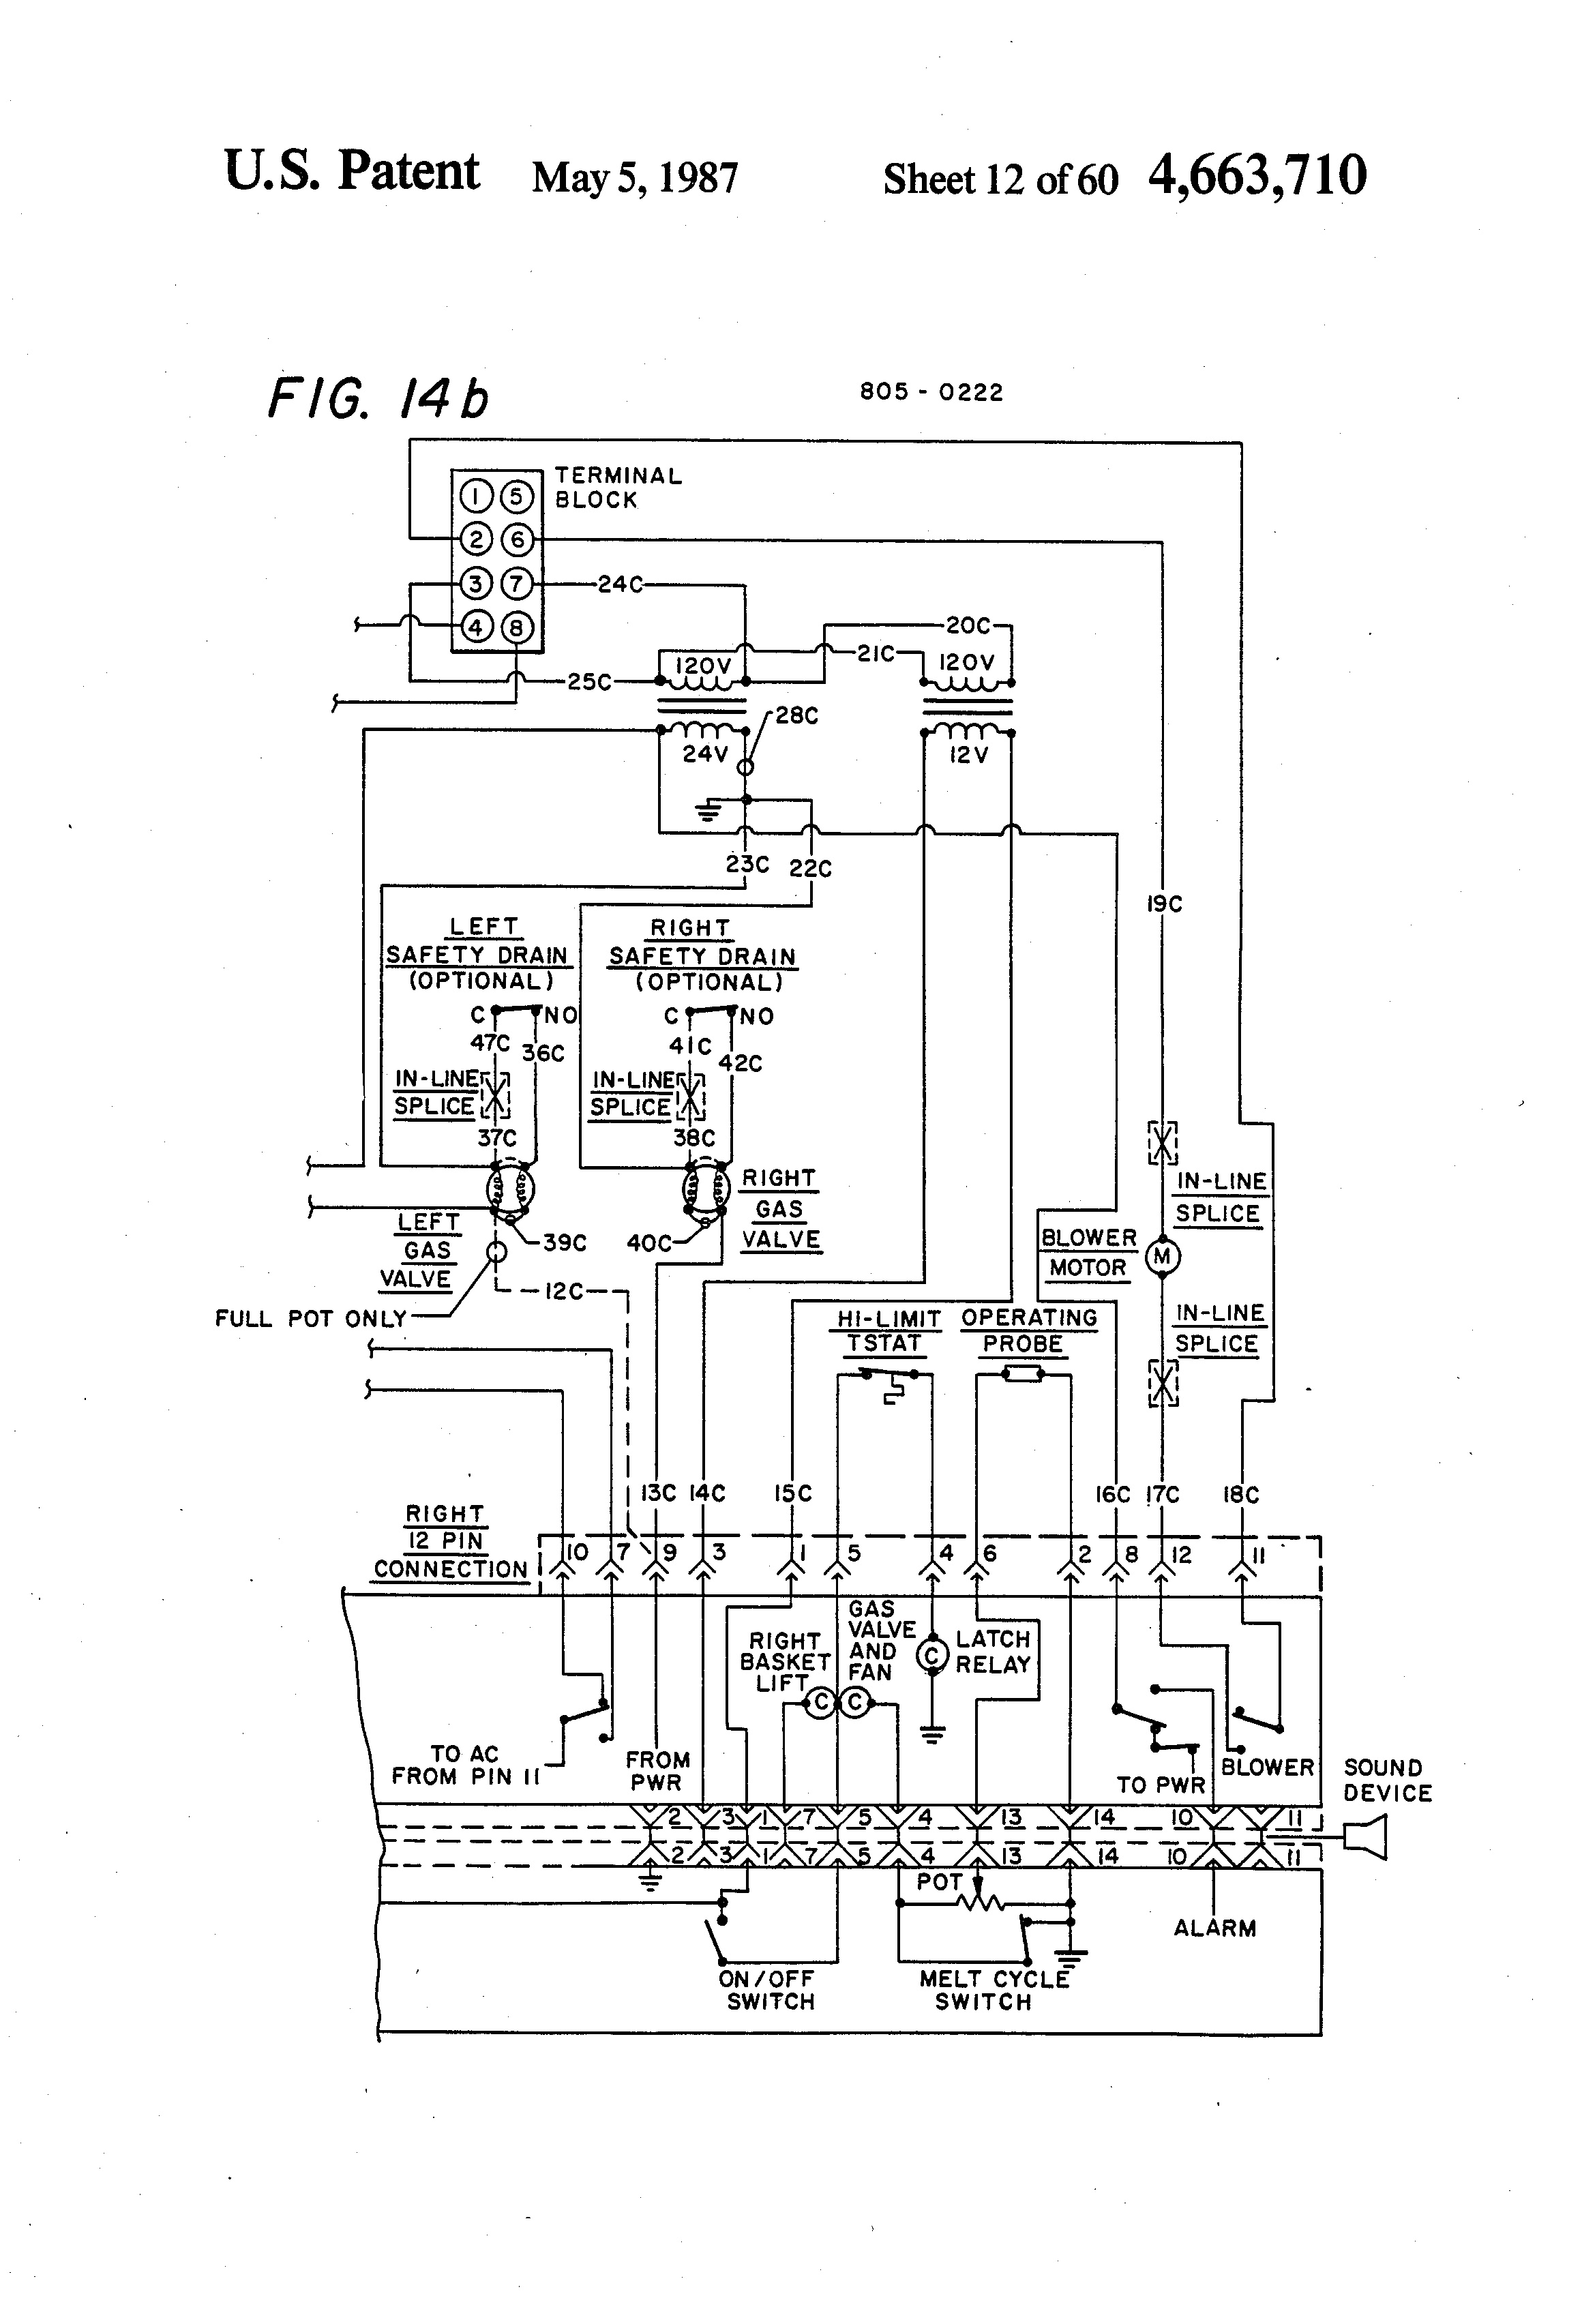 imperial deep fryer wiring diagram Download-Imperial Deep Fryer Wiring Diagram Unique Frymaster Fryer Troubleshooting Gallery Free Troubleshooting 10-h